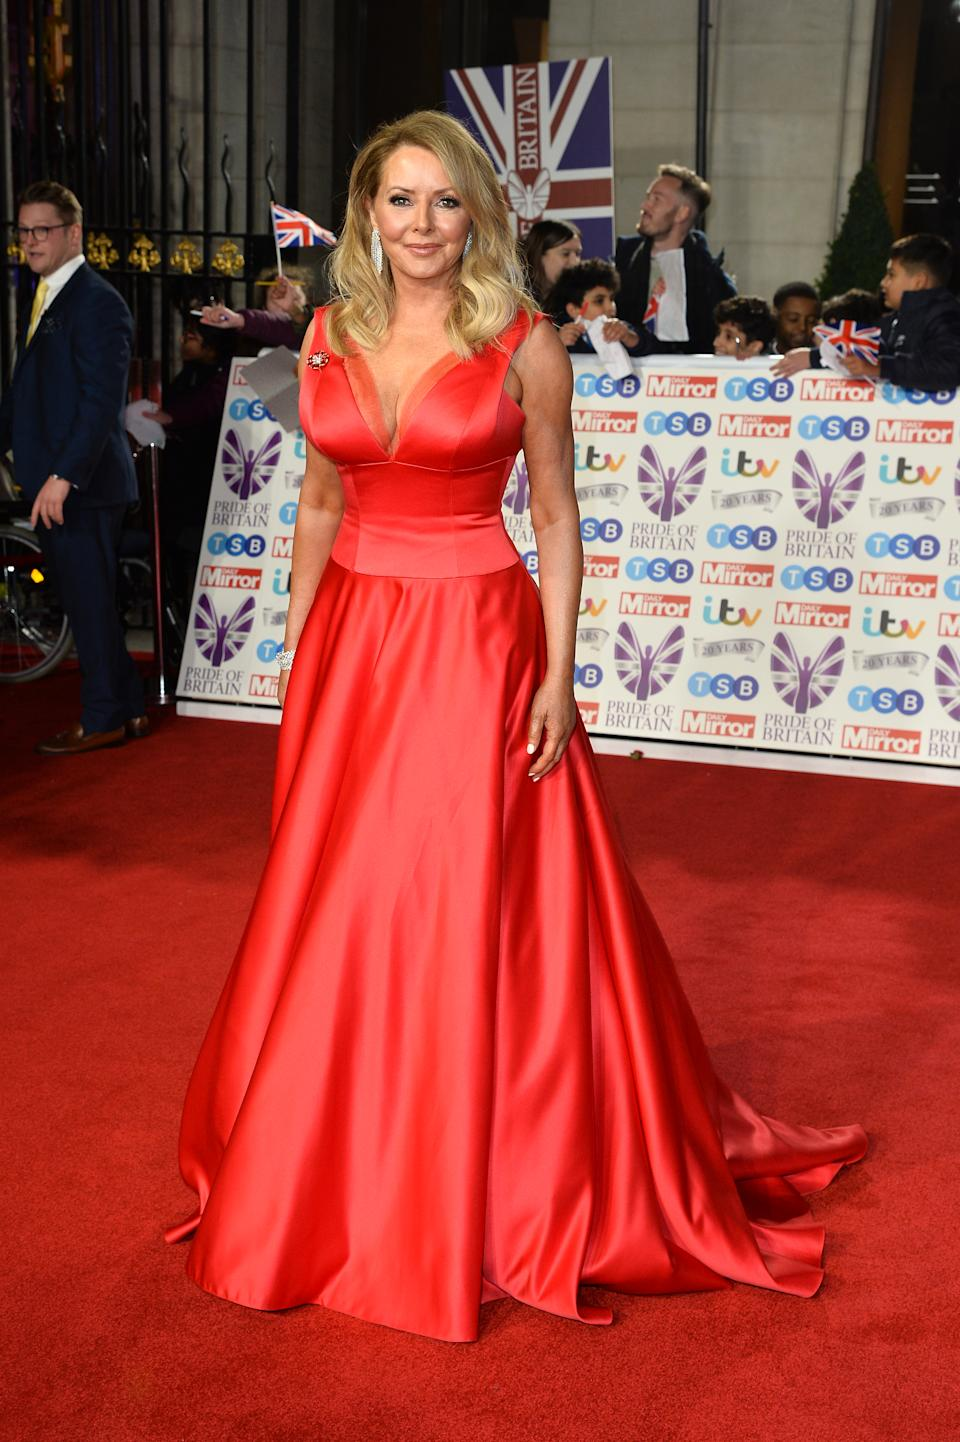 Host of the evening Carol Vorderman wore a plunging red satin gown. [Photo: Getty]